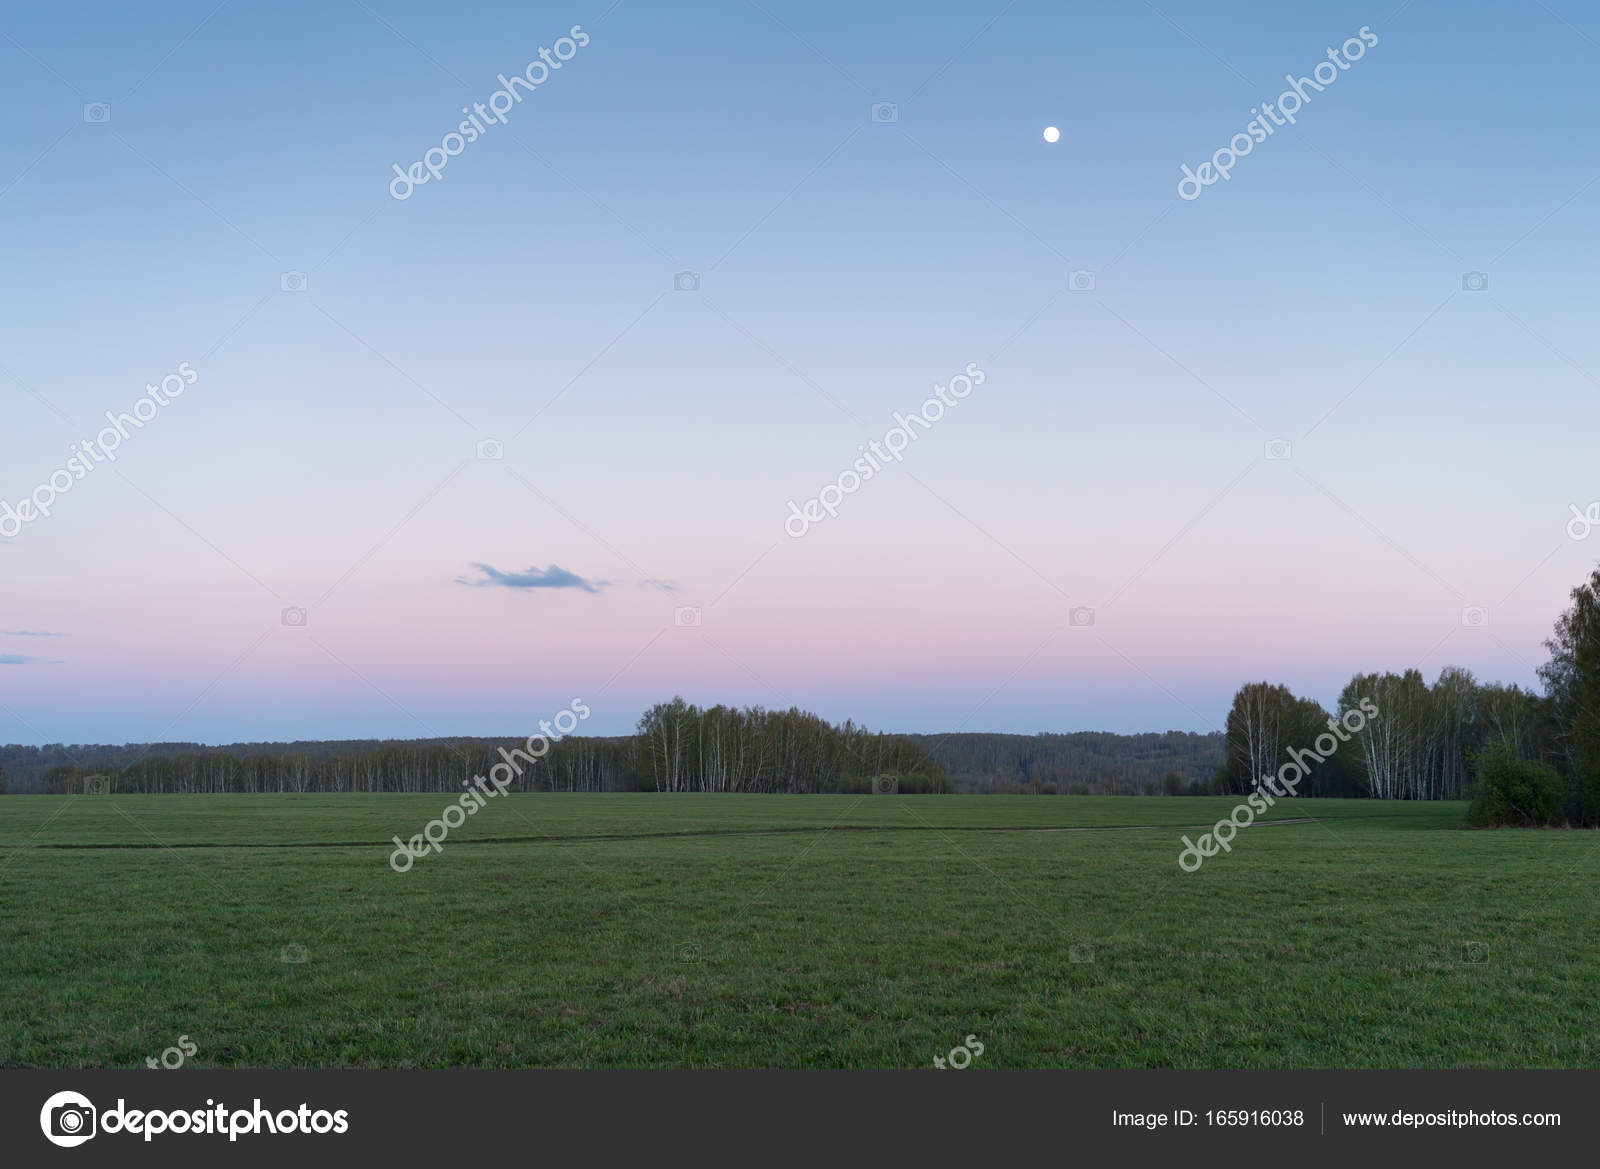 Green Field On A Background Of Pink Purple Sunset Stock Photo C Penderev 165916038